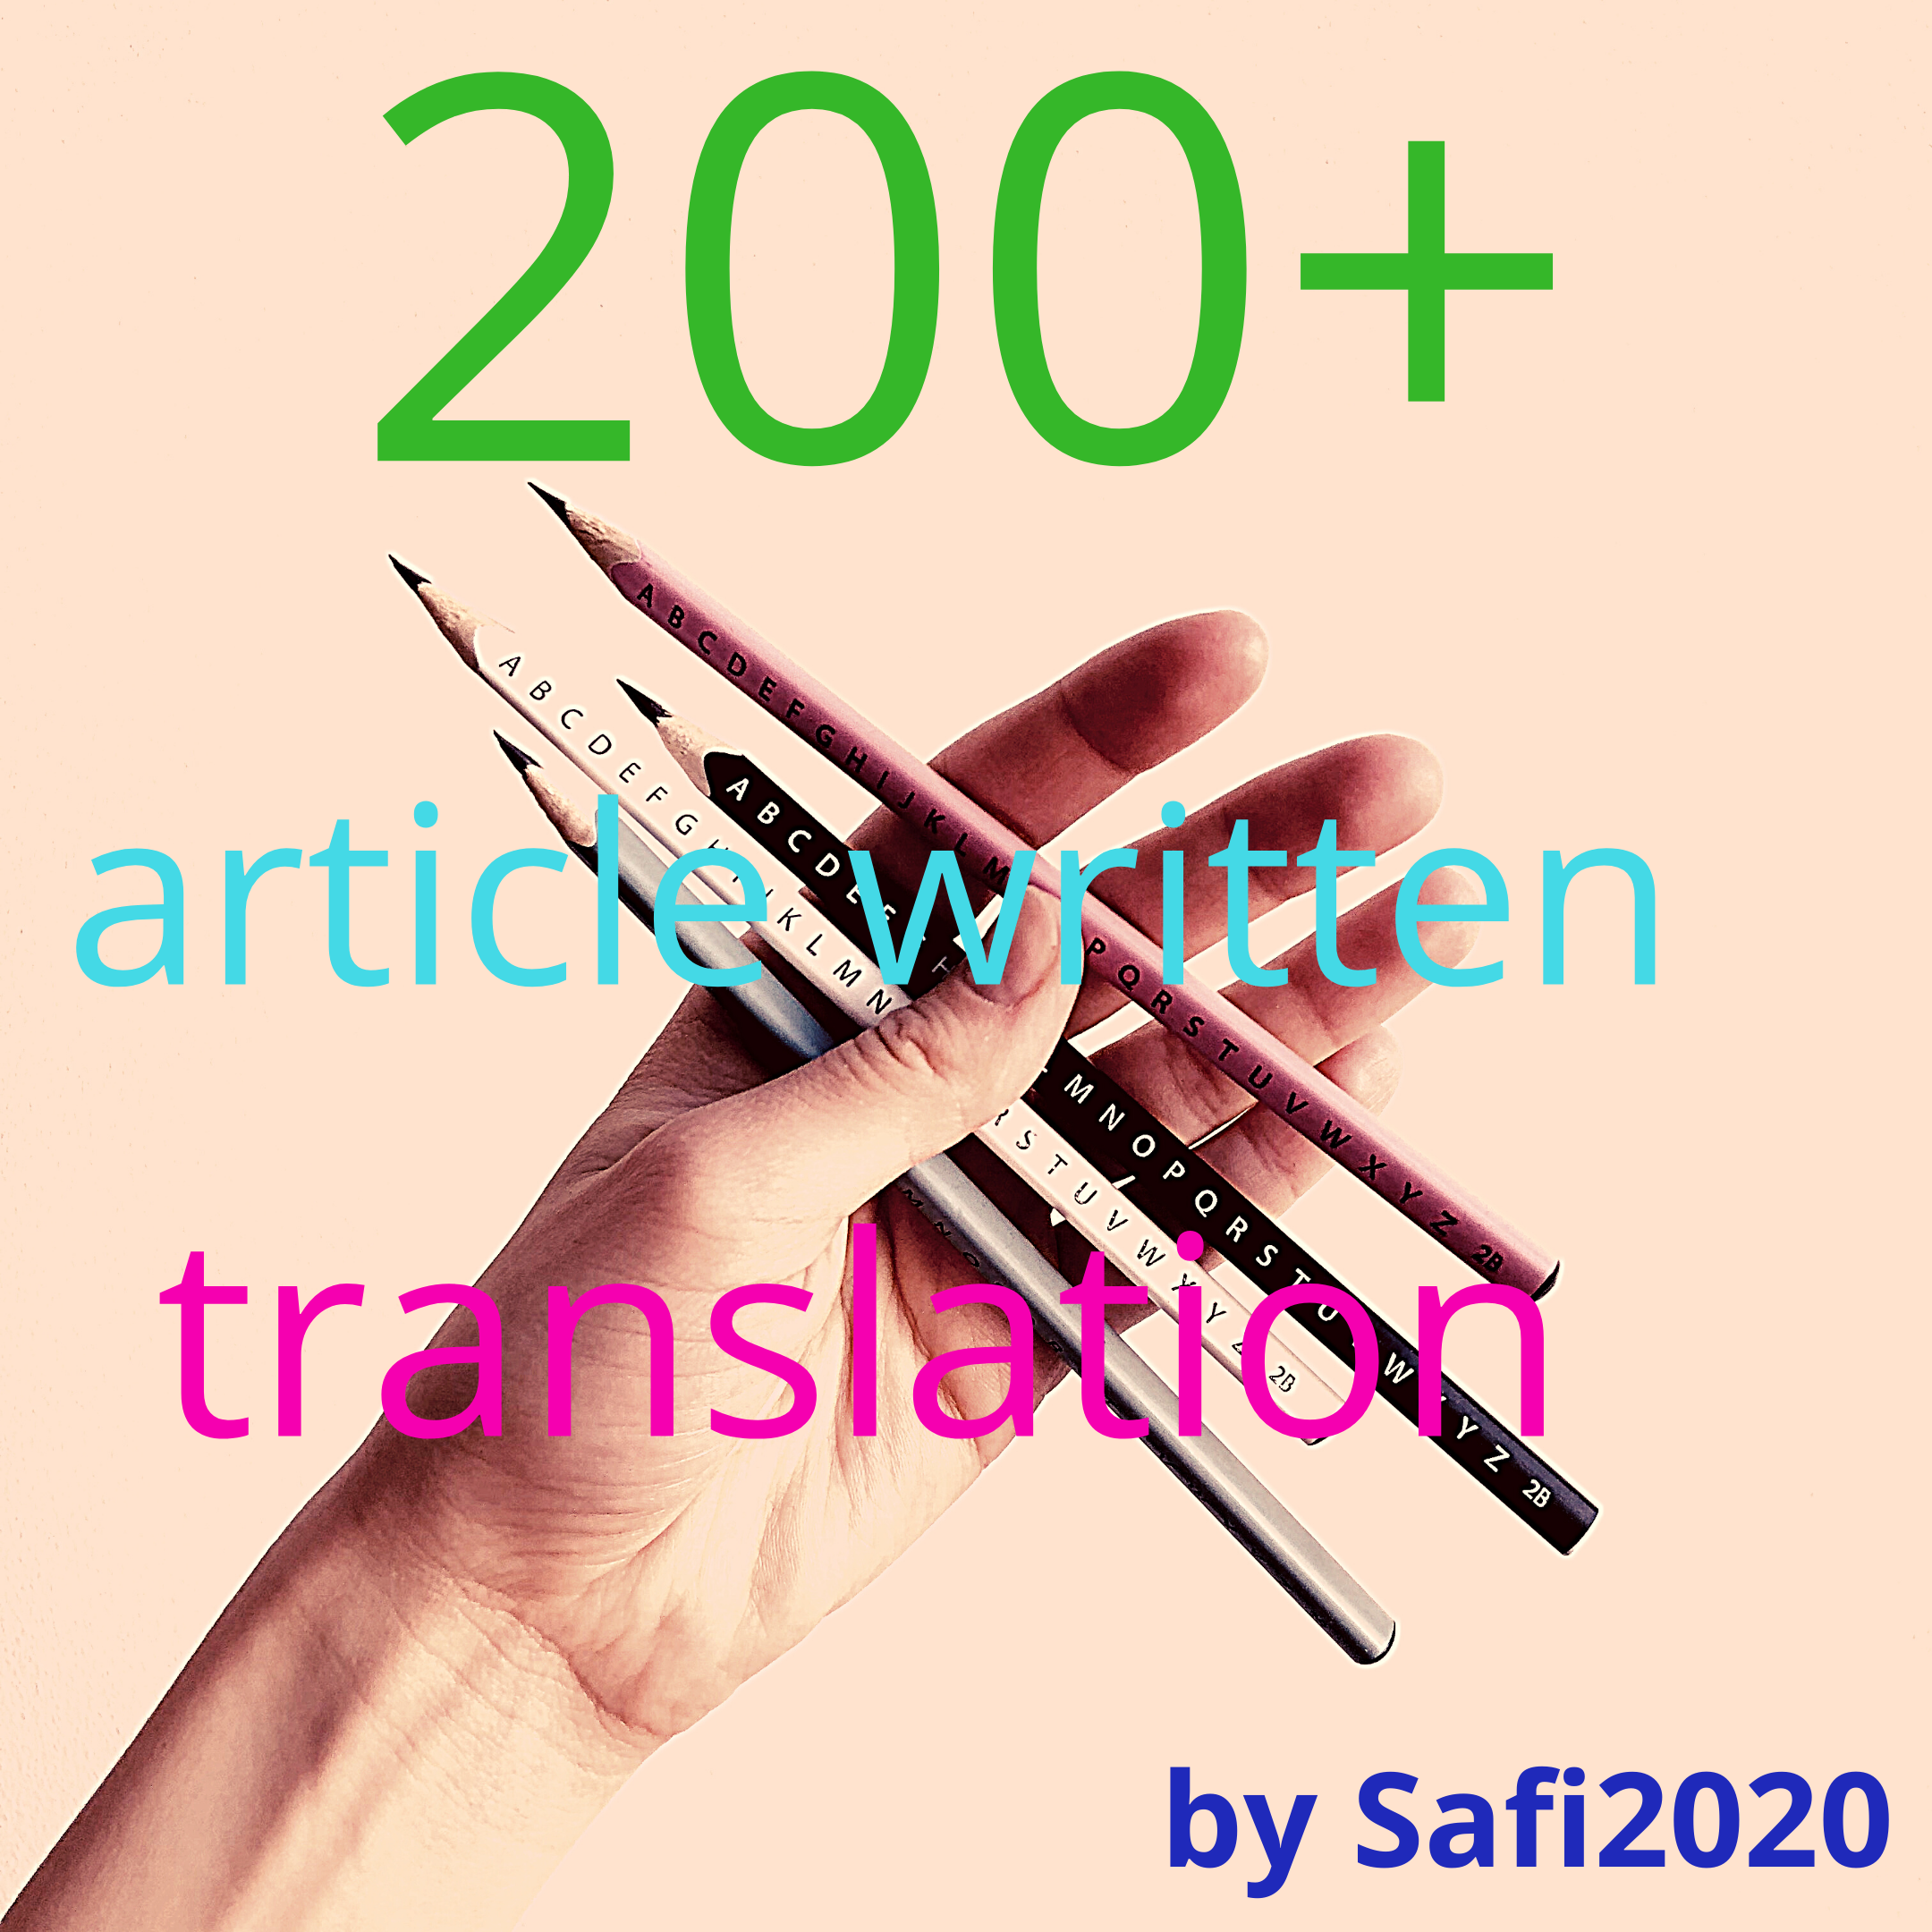 Get article written and translation